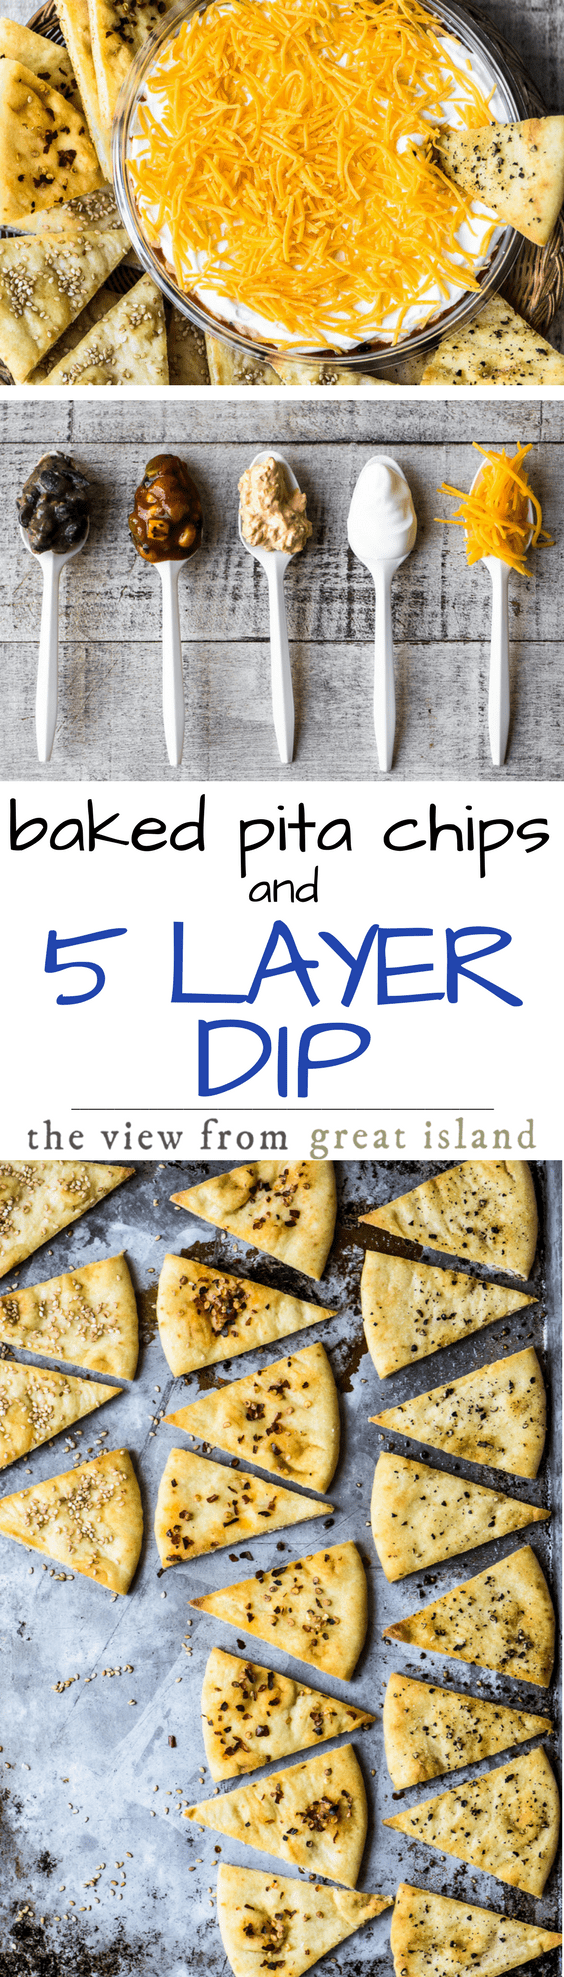 Baked Pita Chips with Black Bean, Corn, & Chorizo 5 Layer Dip ~ A great dip deserves a great chip, and today I'm baking up my homemade pita chips in 5 flavors in honor of Rojo's newest layered dip ~ let's dig in! #appetizer #dip #layereddip #mexican #salsa #beandip #gamdeday #sevenlayerdip #bestdip